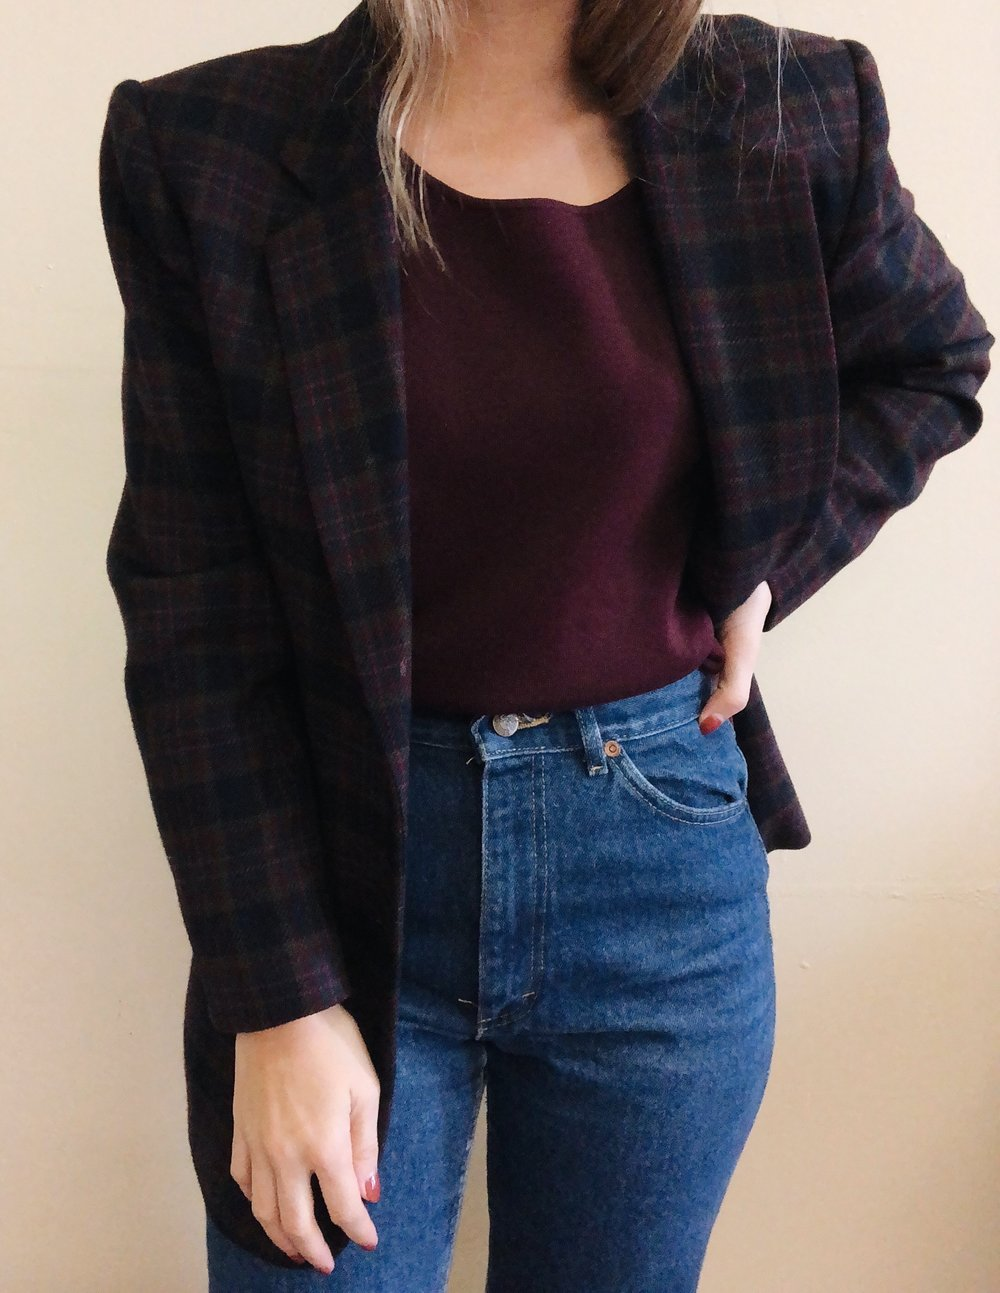 Vintage Jewel-Toned Plaid Blazer -